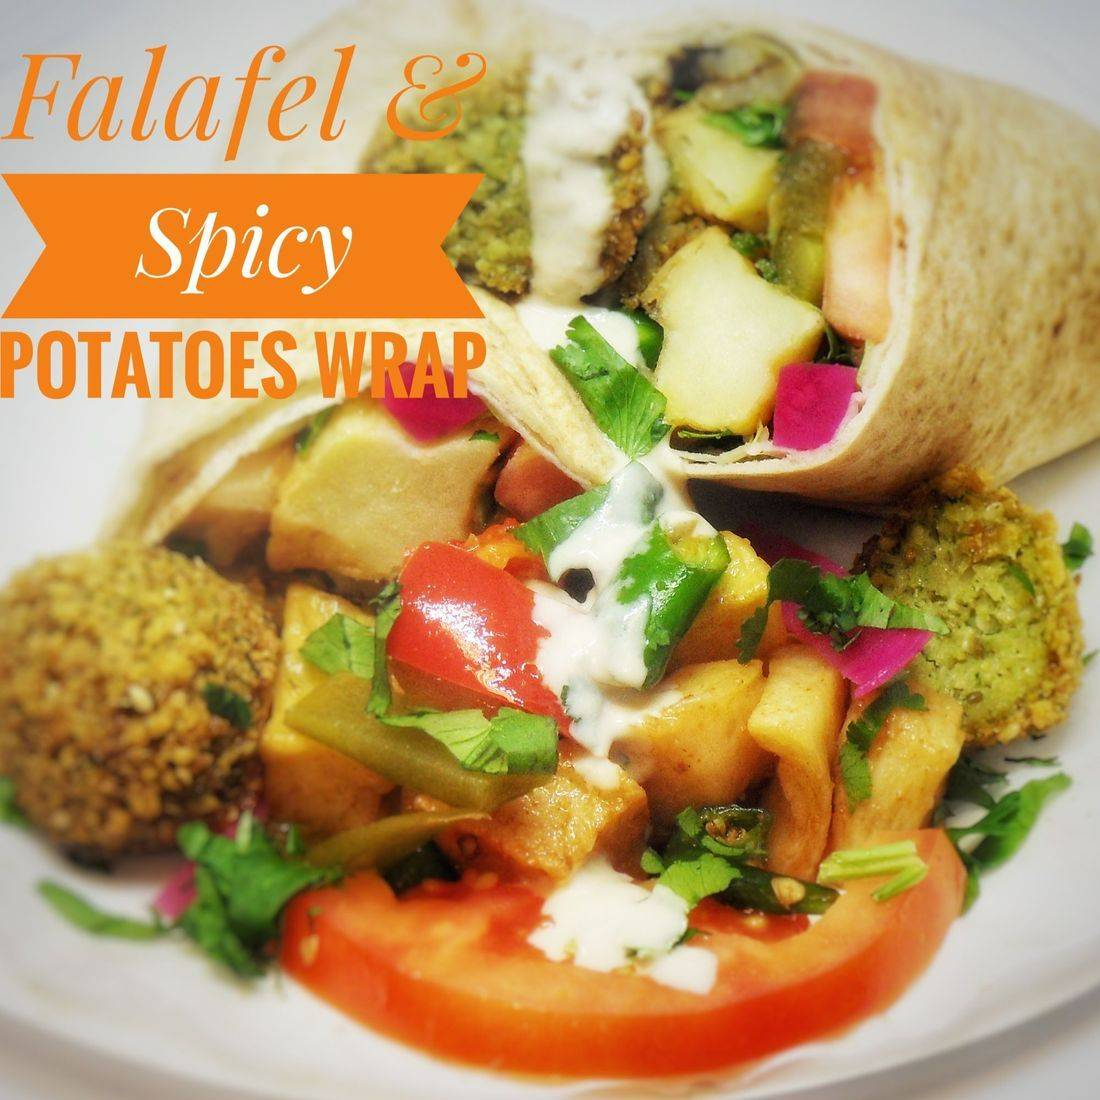 Falafel & Spicy Potatoes Wrap